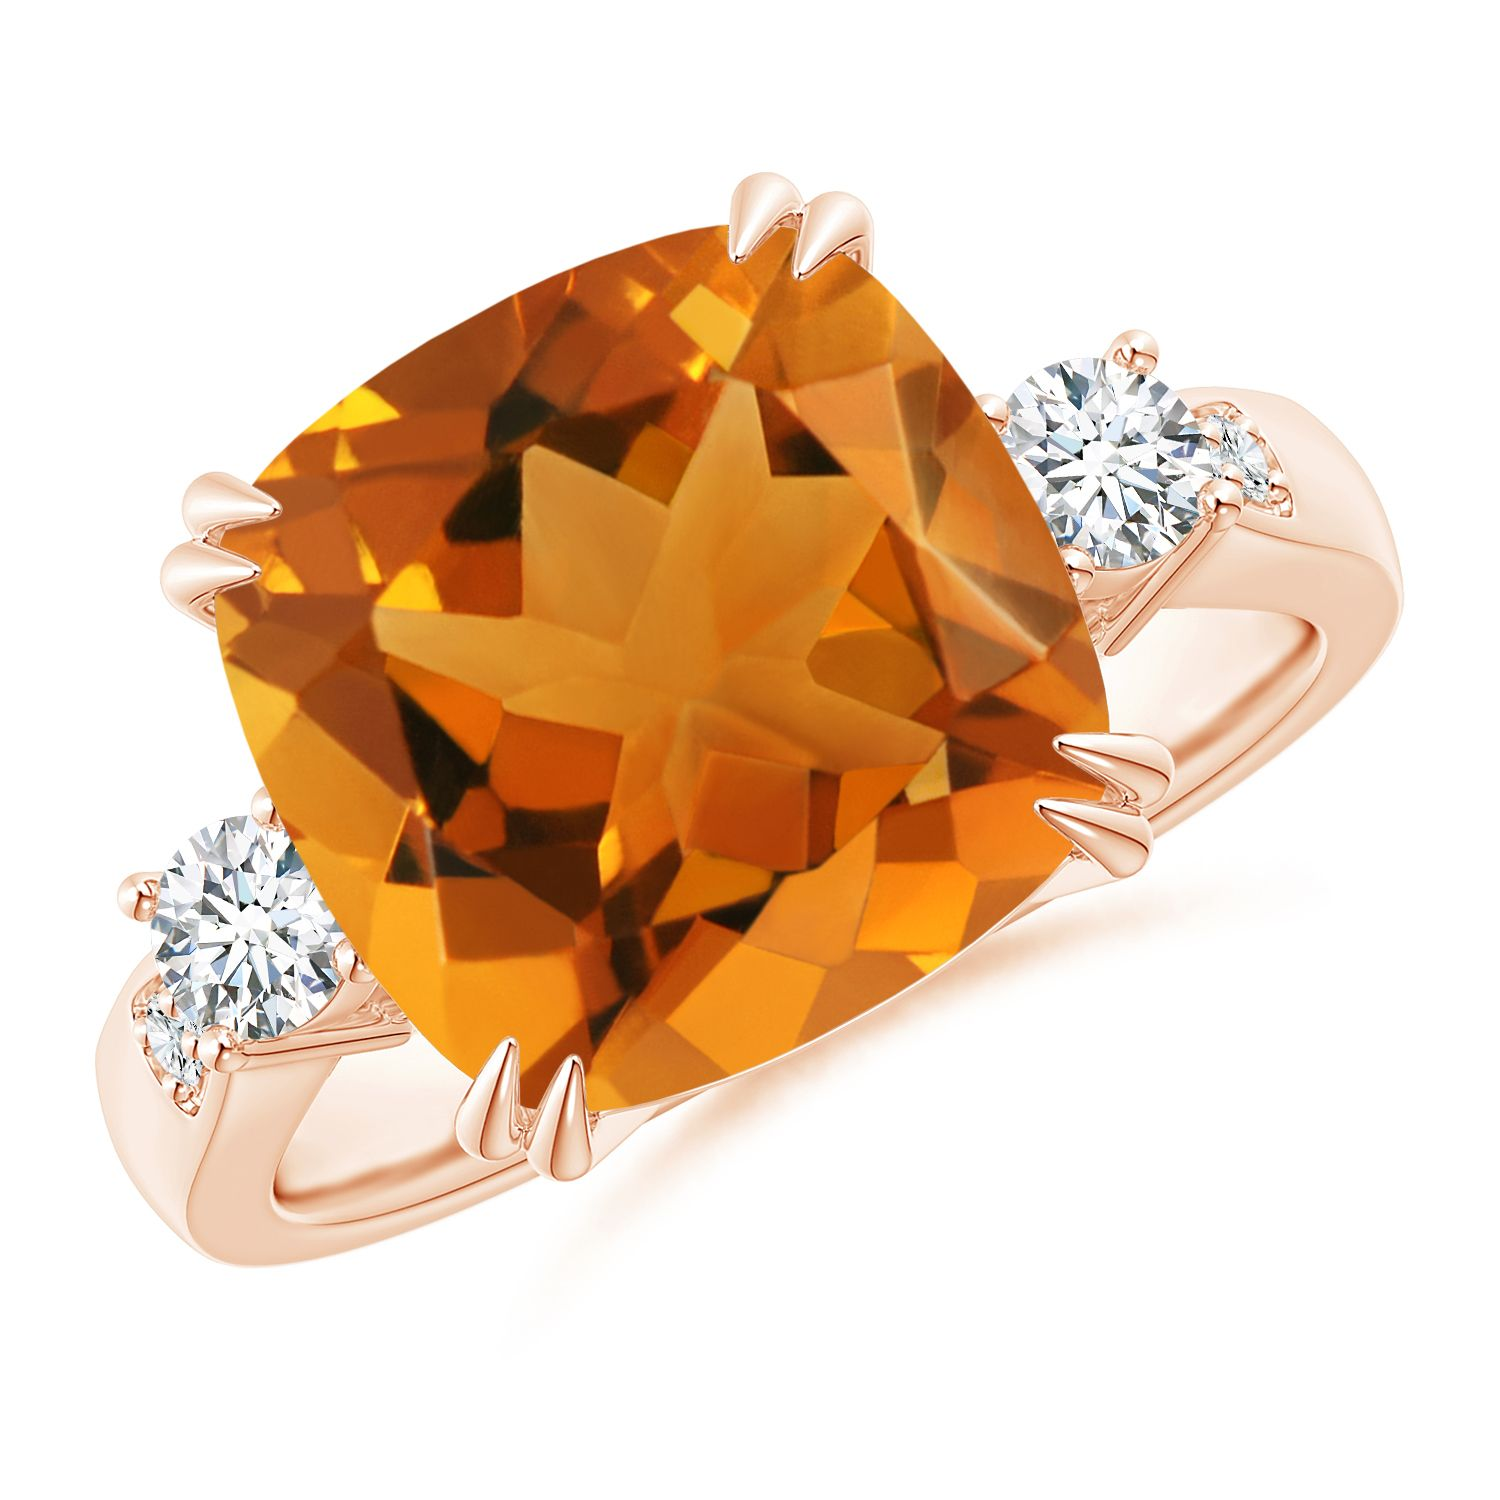 Angara Solitaire Cushion Citrine Ring in Platinum 35a3frIl7